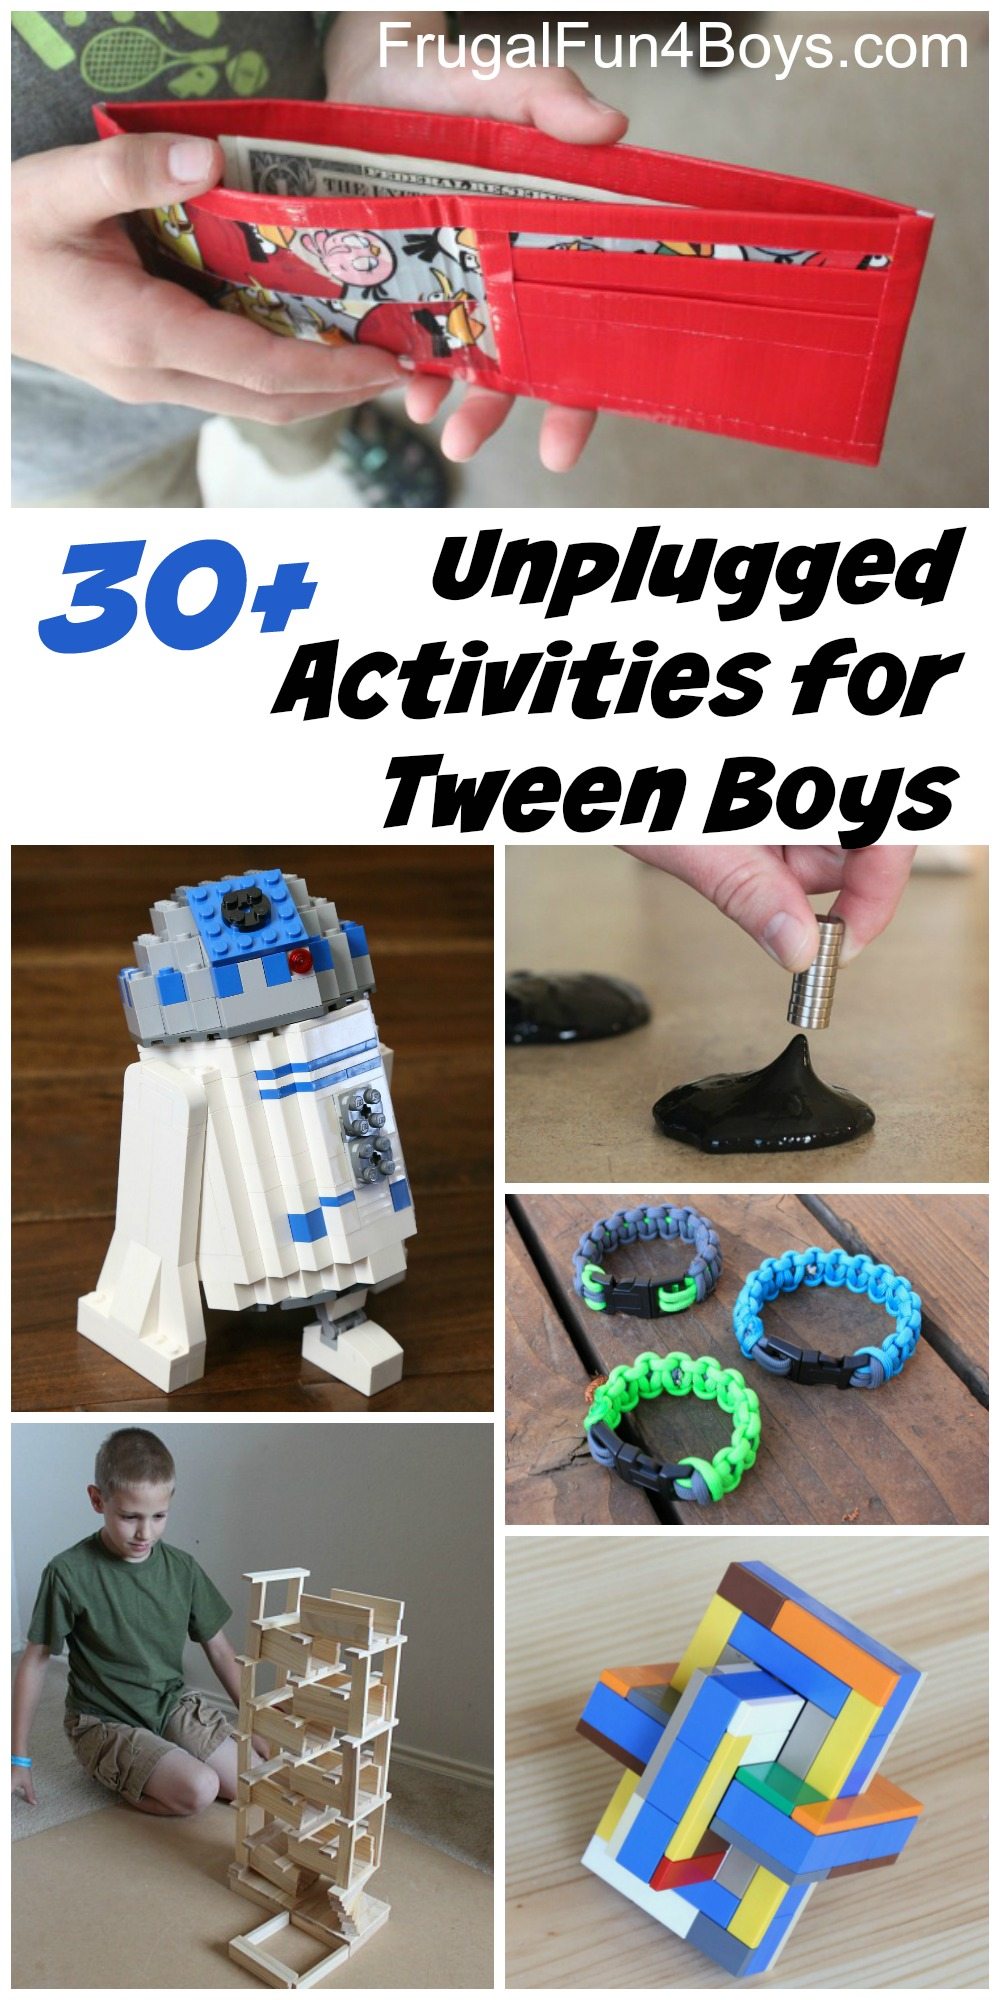 20+ Unplugged Activities for Tween Age Boys - Frugal Fun For Boys ...